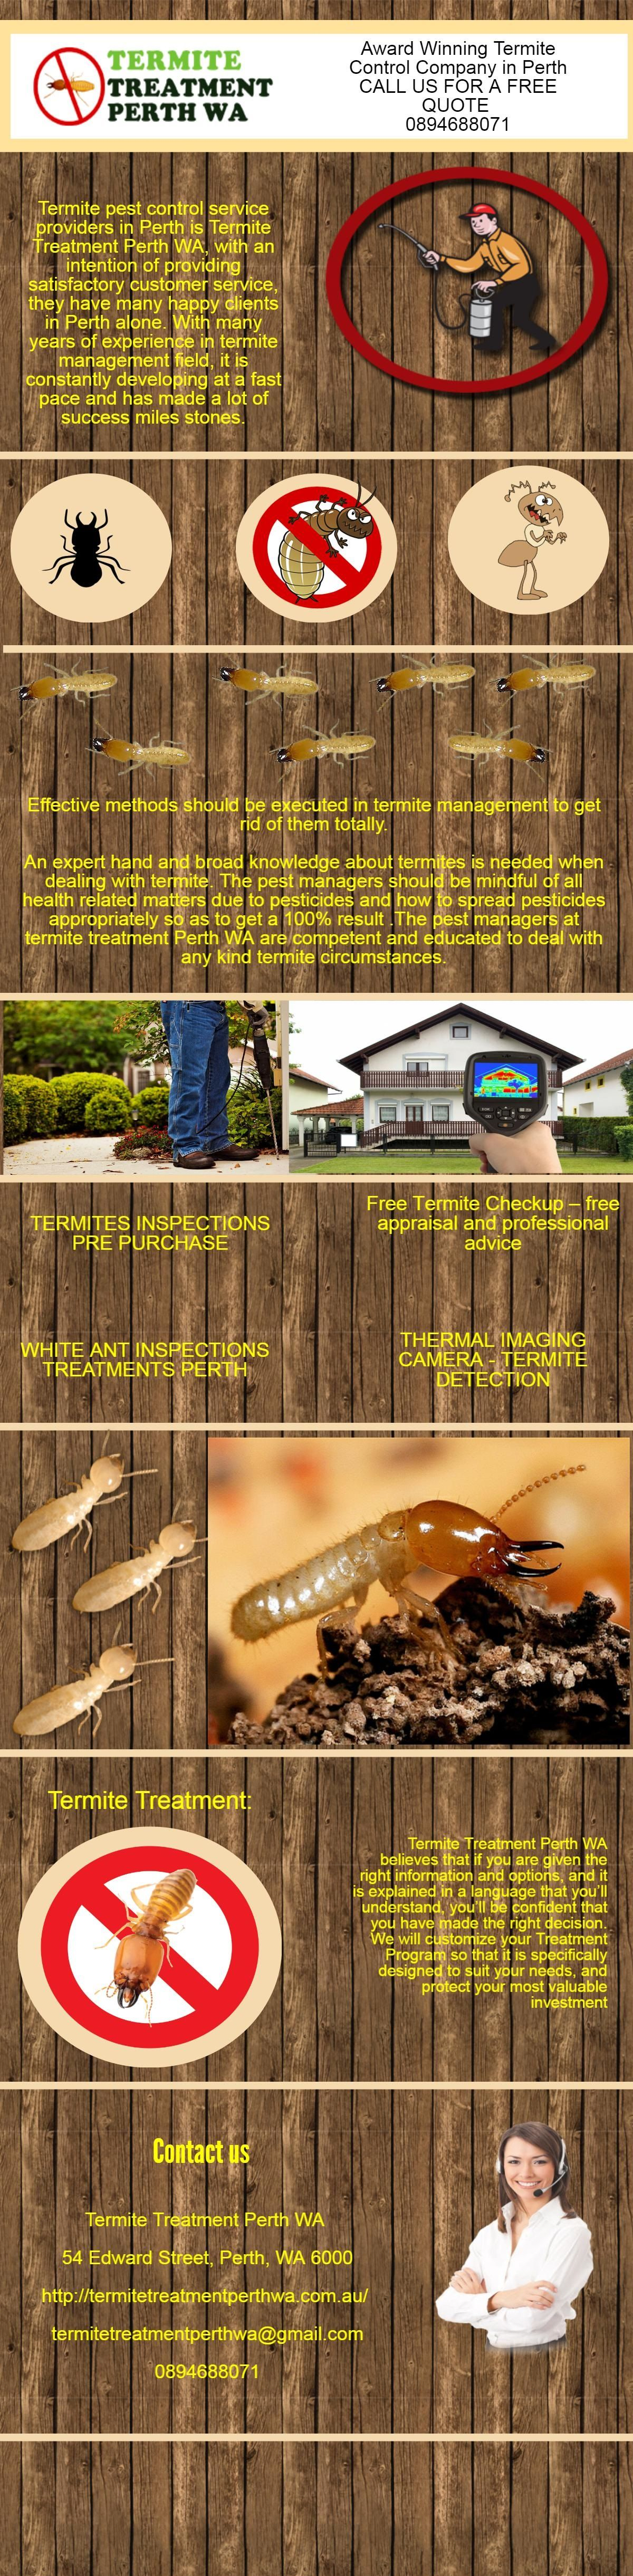 We provide best in class termite treatment service at an